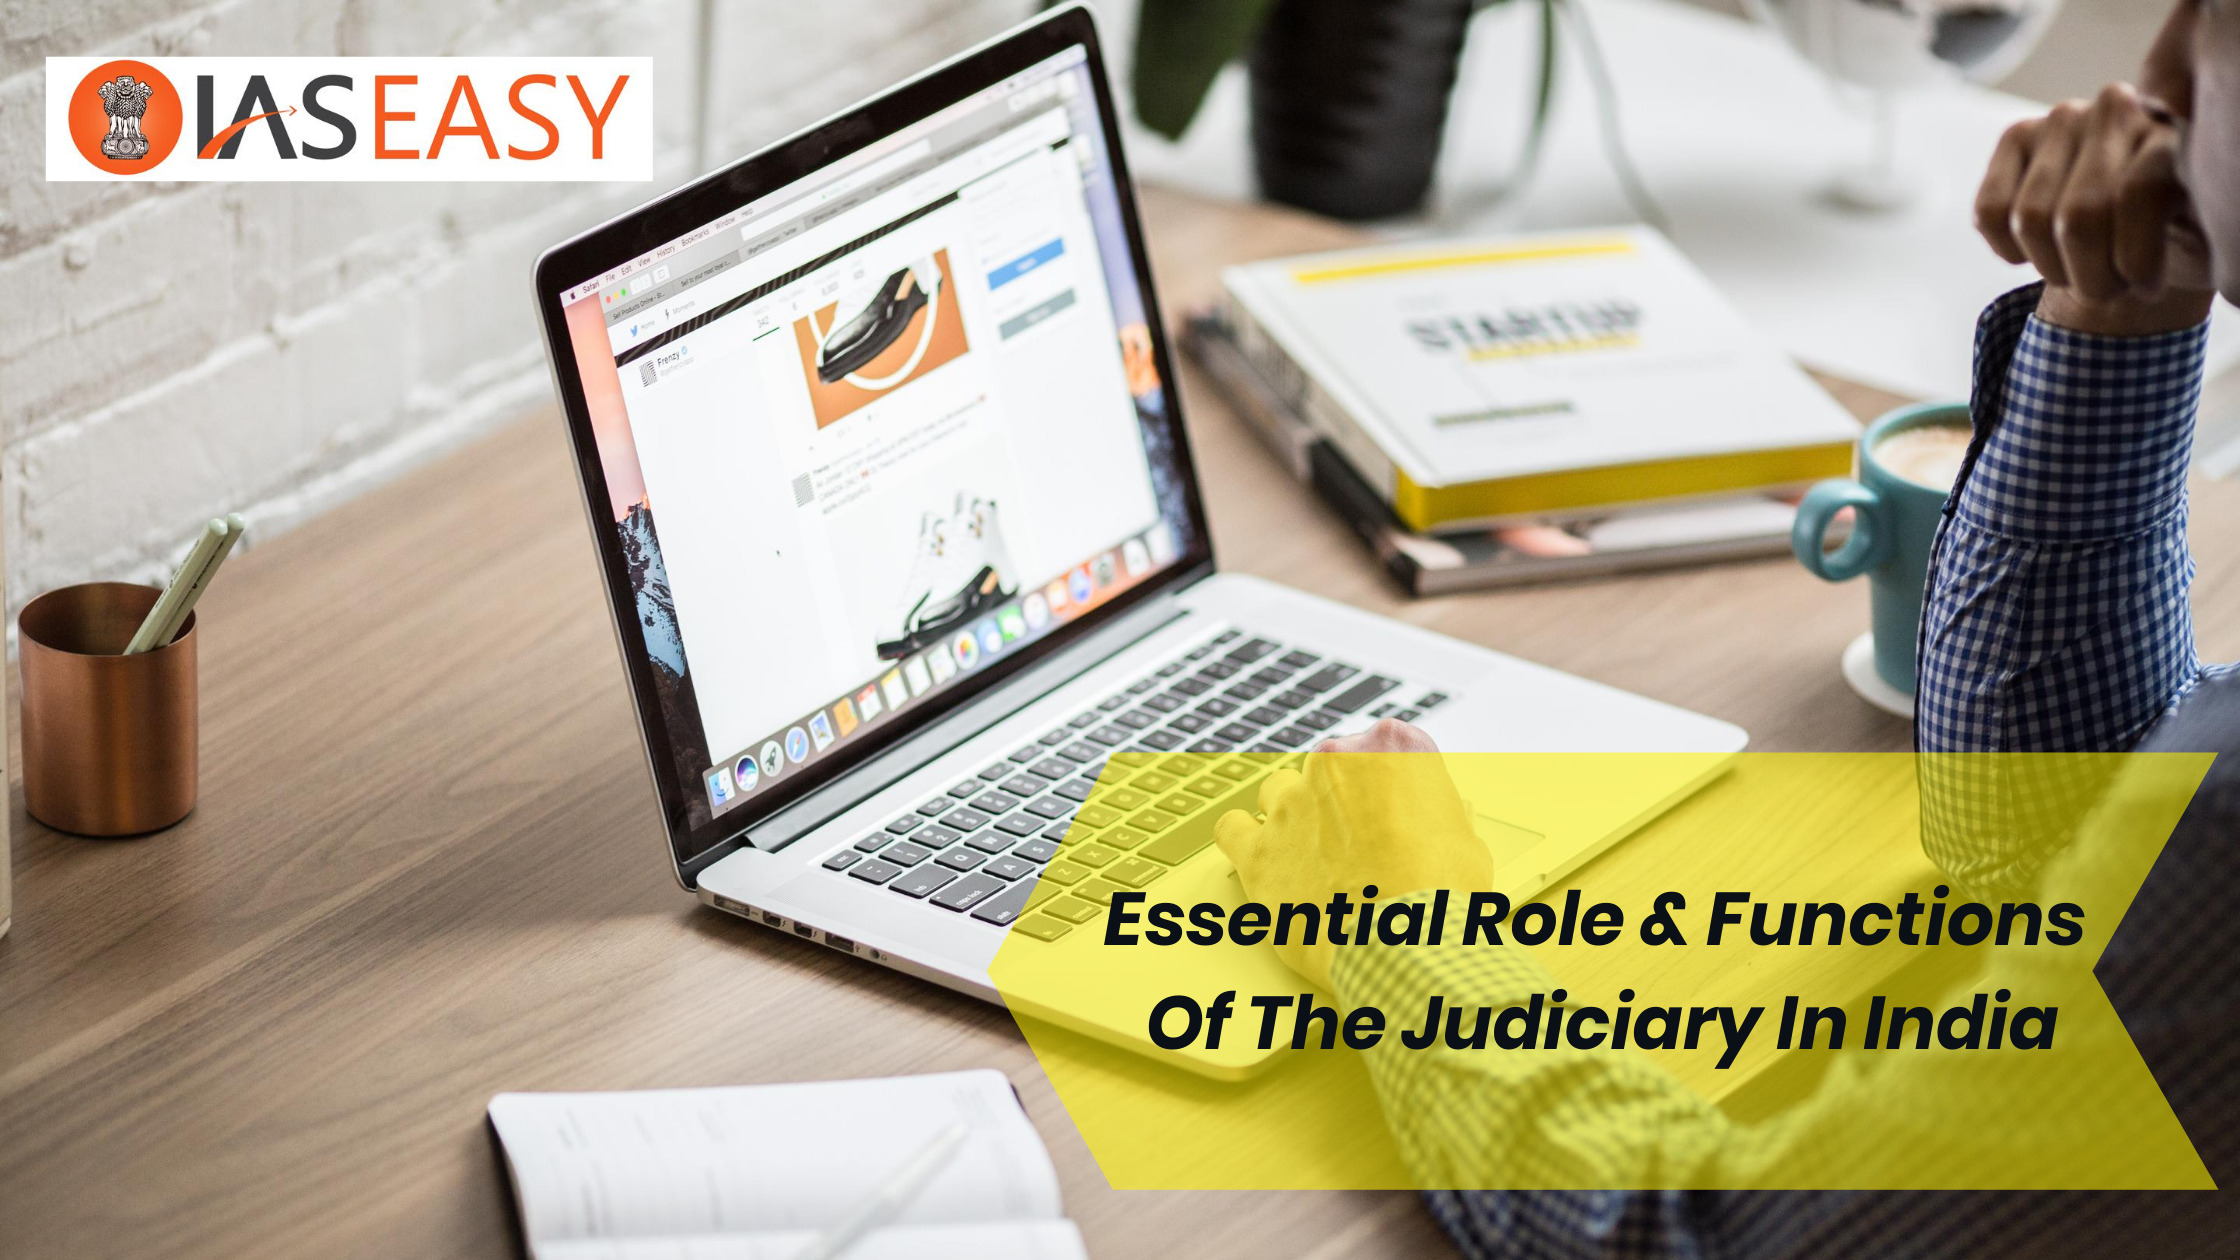 Most Essential Role And Functions Of The Judiciary In India